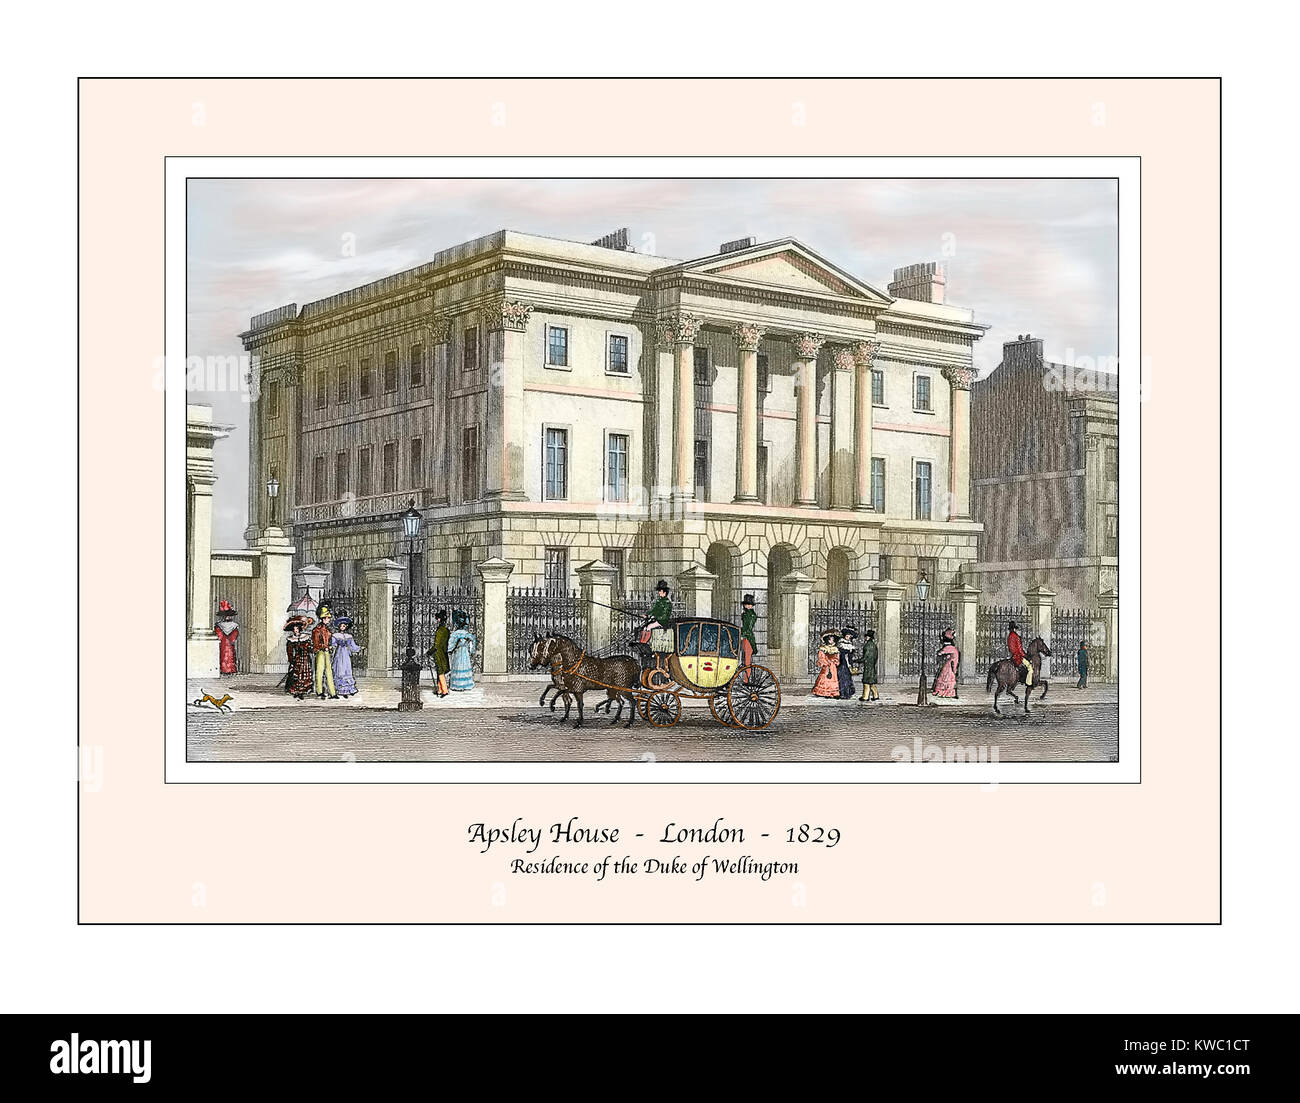 Apsley House London Original Design based on a 19th century Engraving - Stock Image